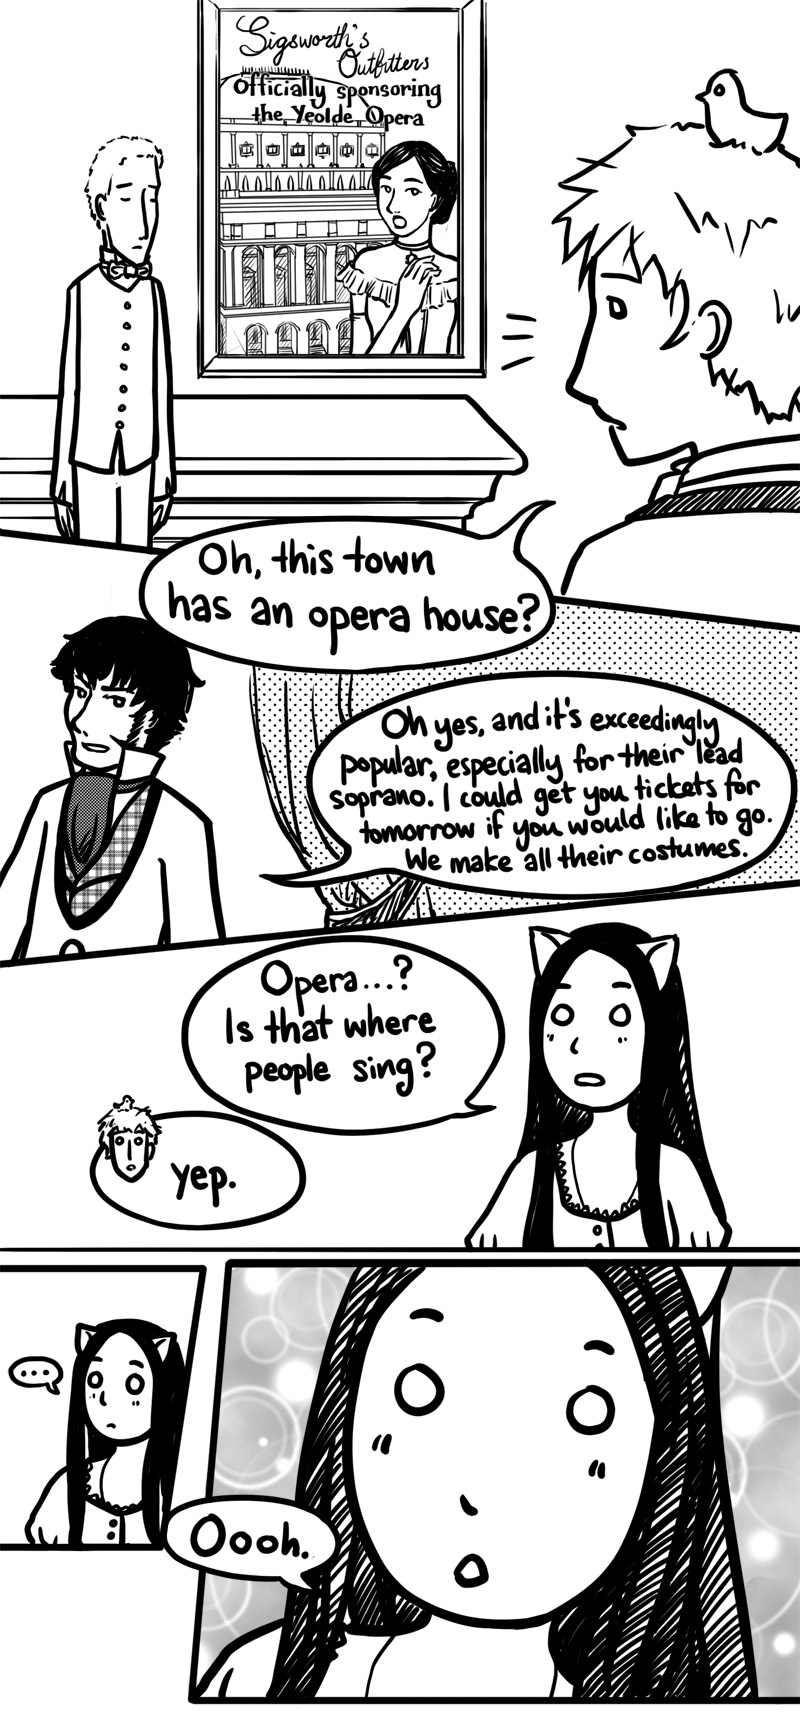 Where People Sing